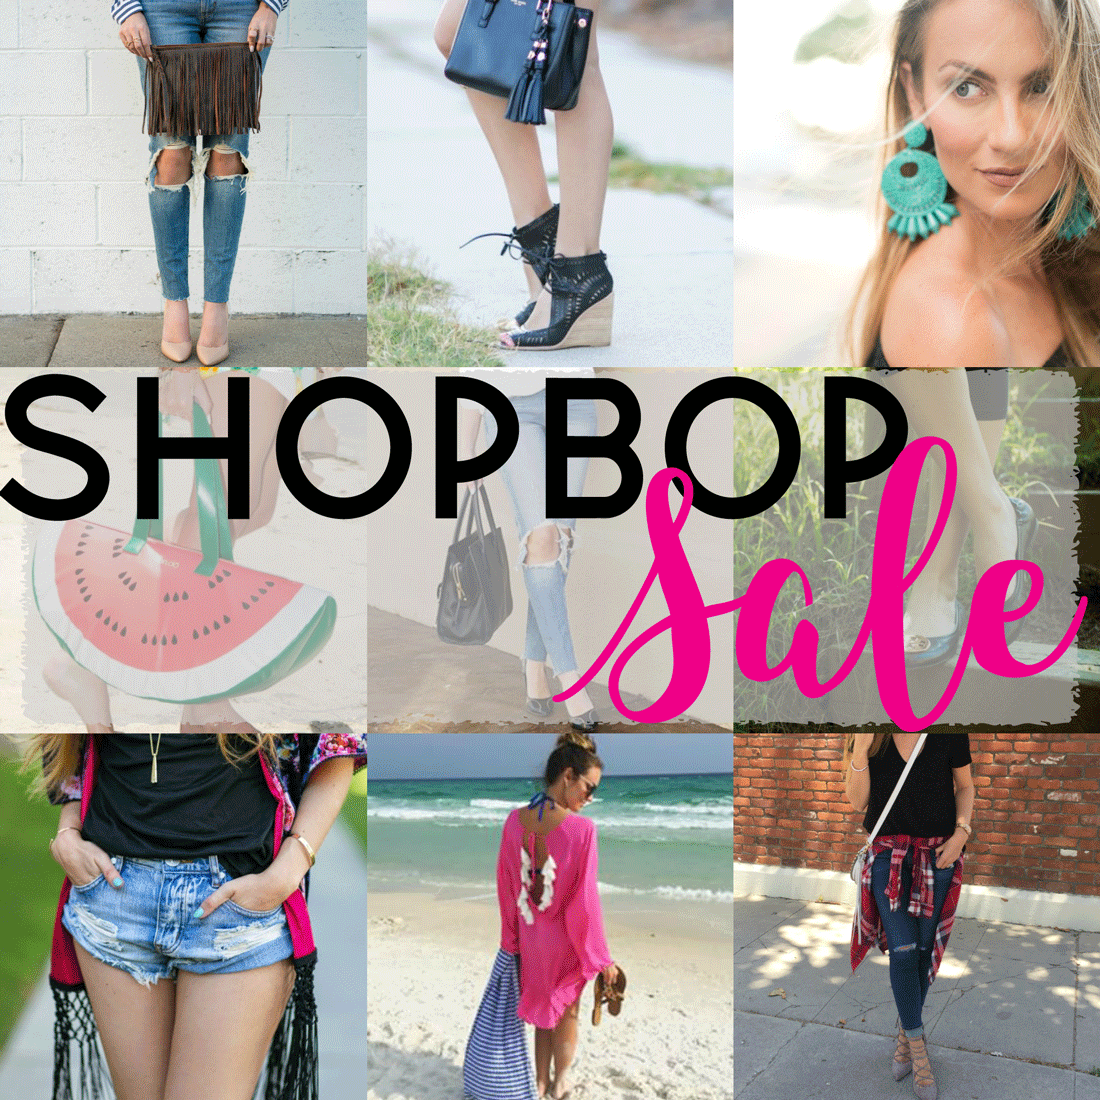 SHOPBOP SALE ANGELA LANTER HELLO GORGEOUS